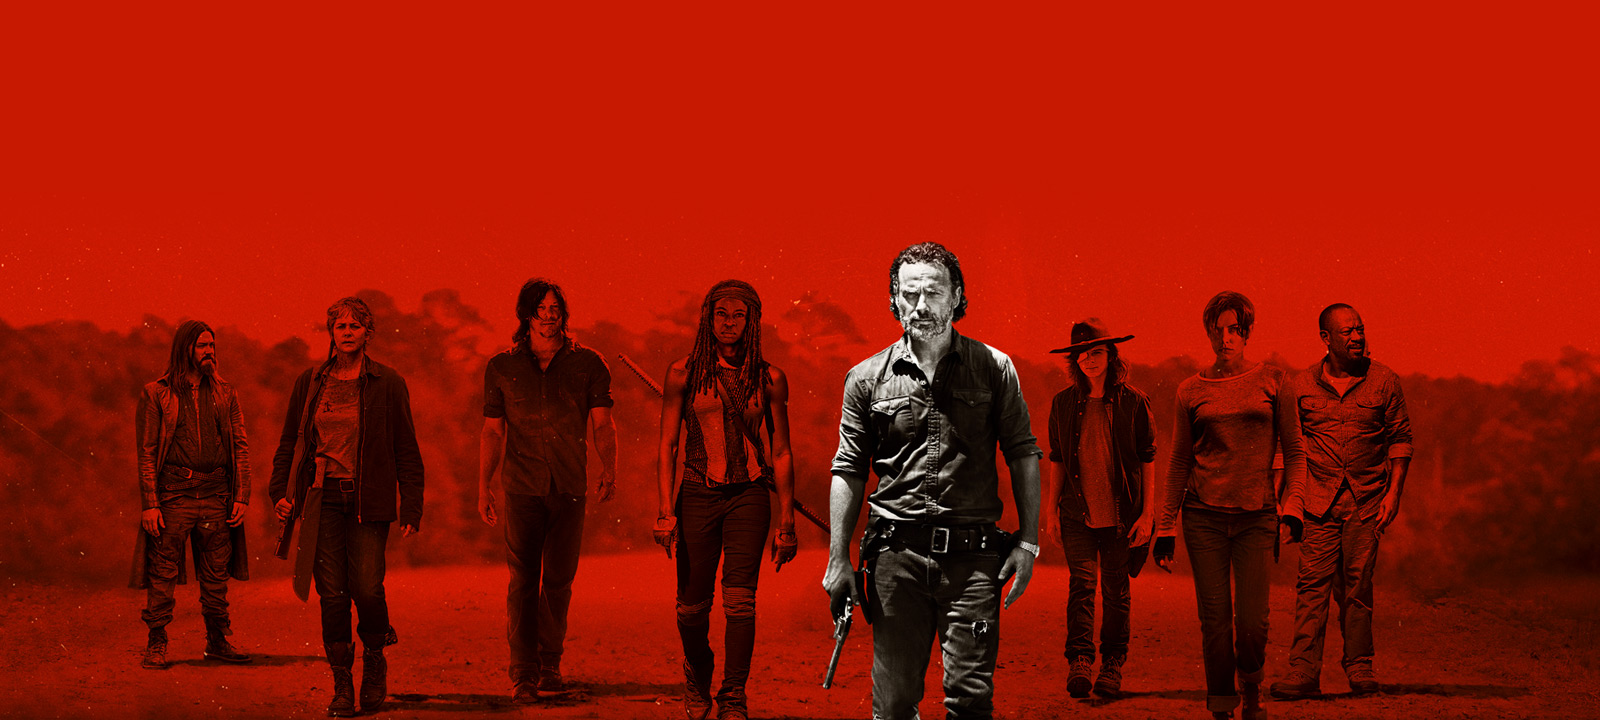 the-walking-dead-season-7b-rick-lincoln-daryl-reedus-alt-key-art-800×600-nologo